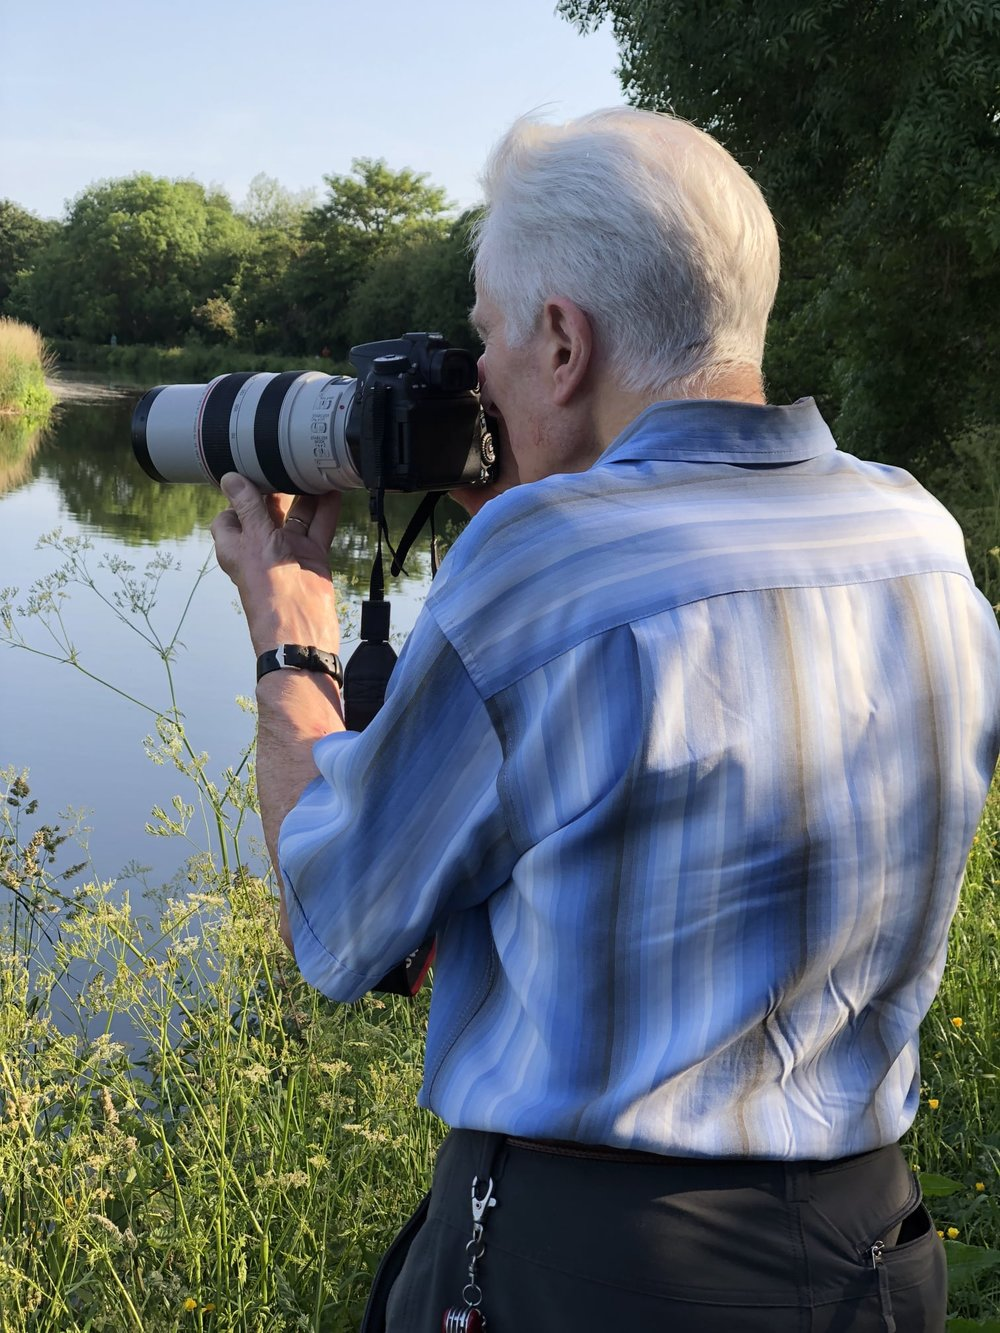 dad behind the lens last week